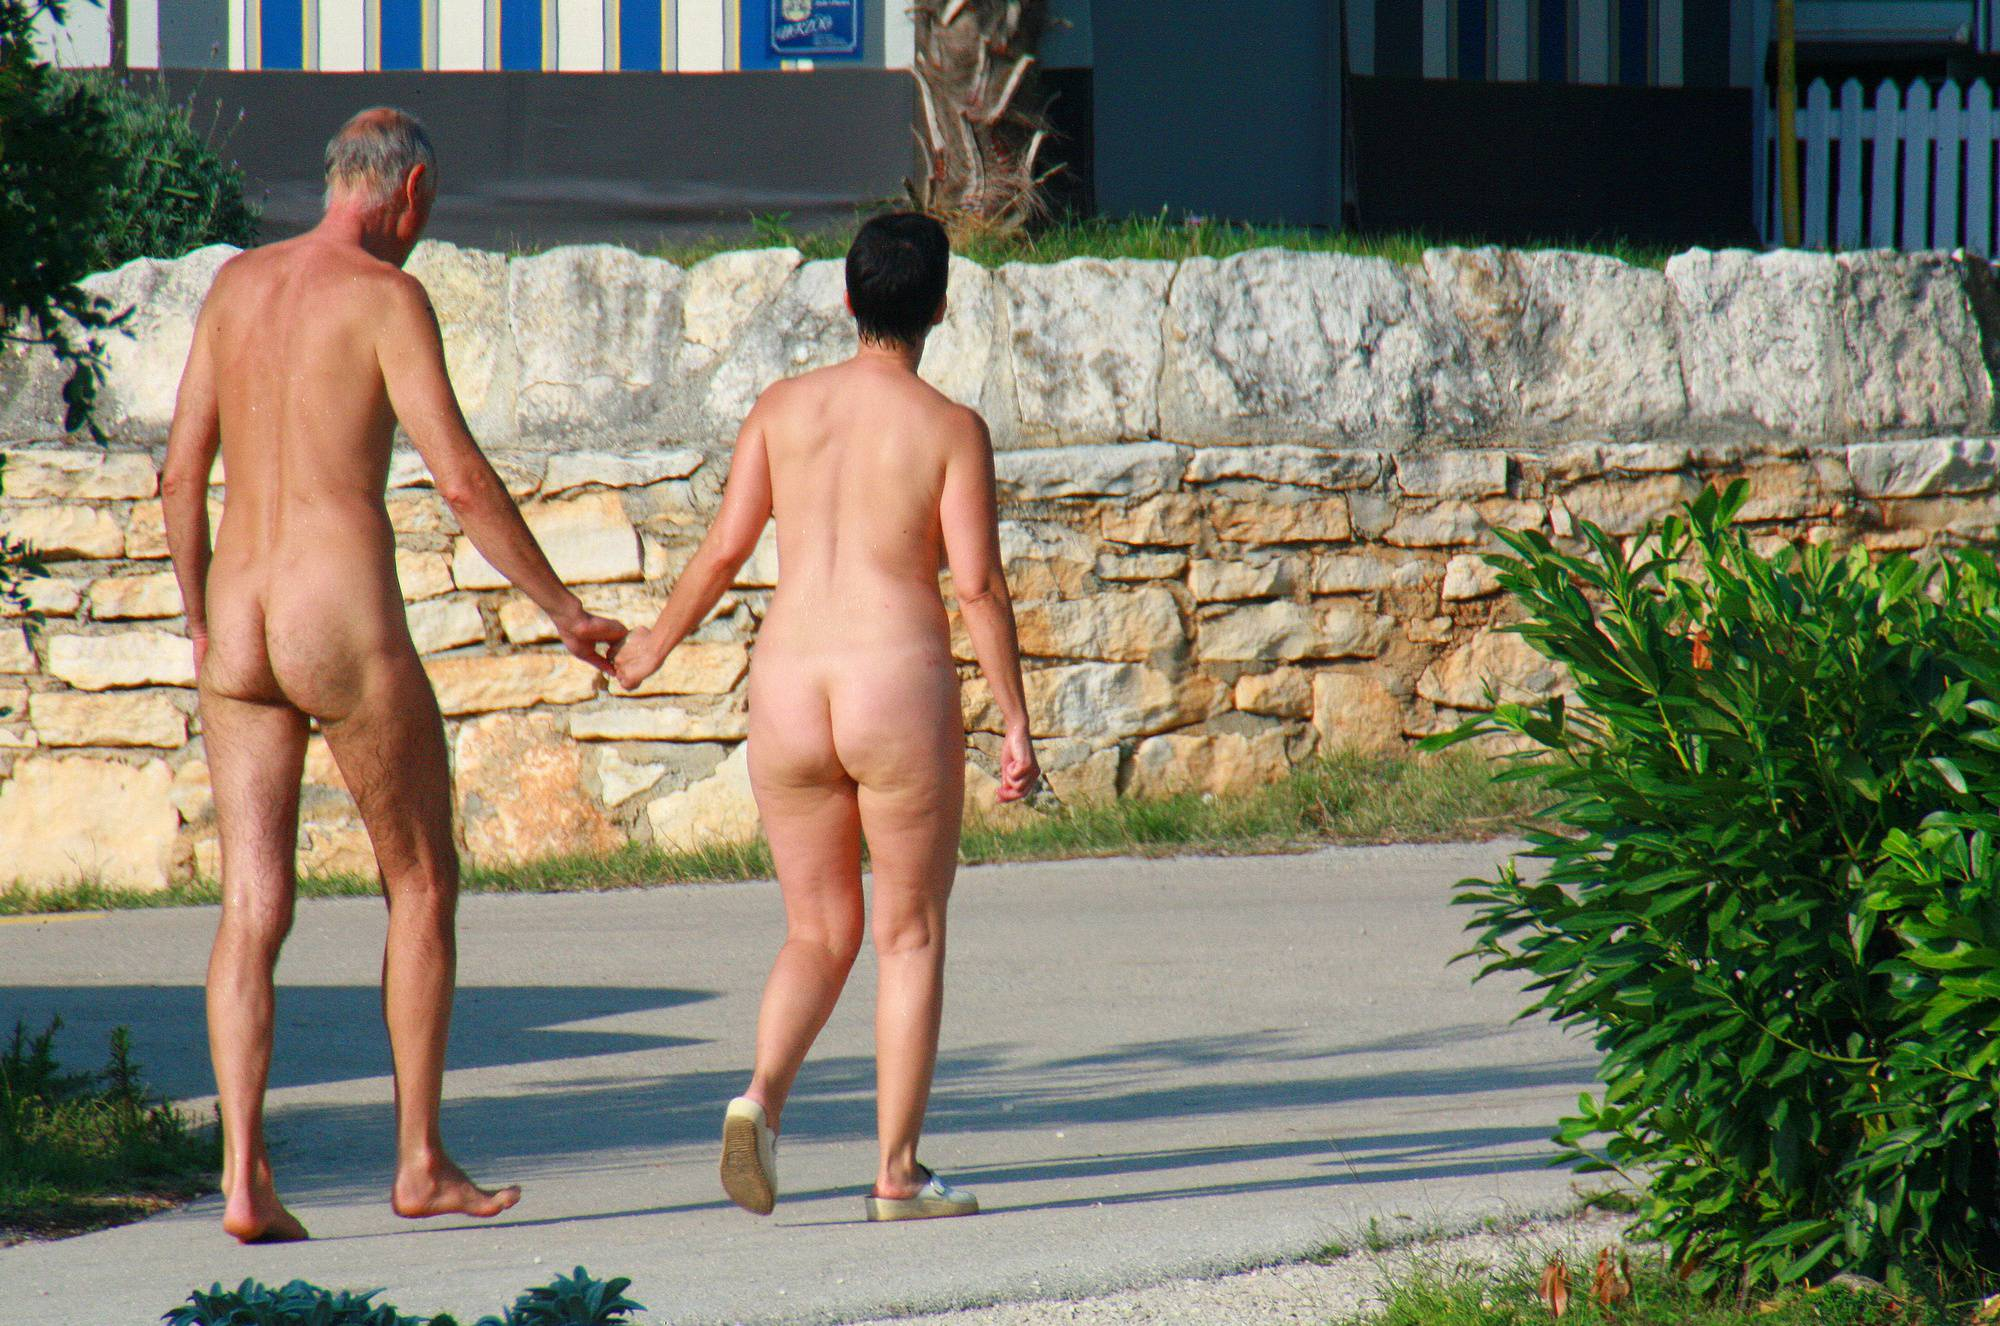 Nudist Gallery Nora FKK In Love Couples - 1